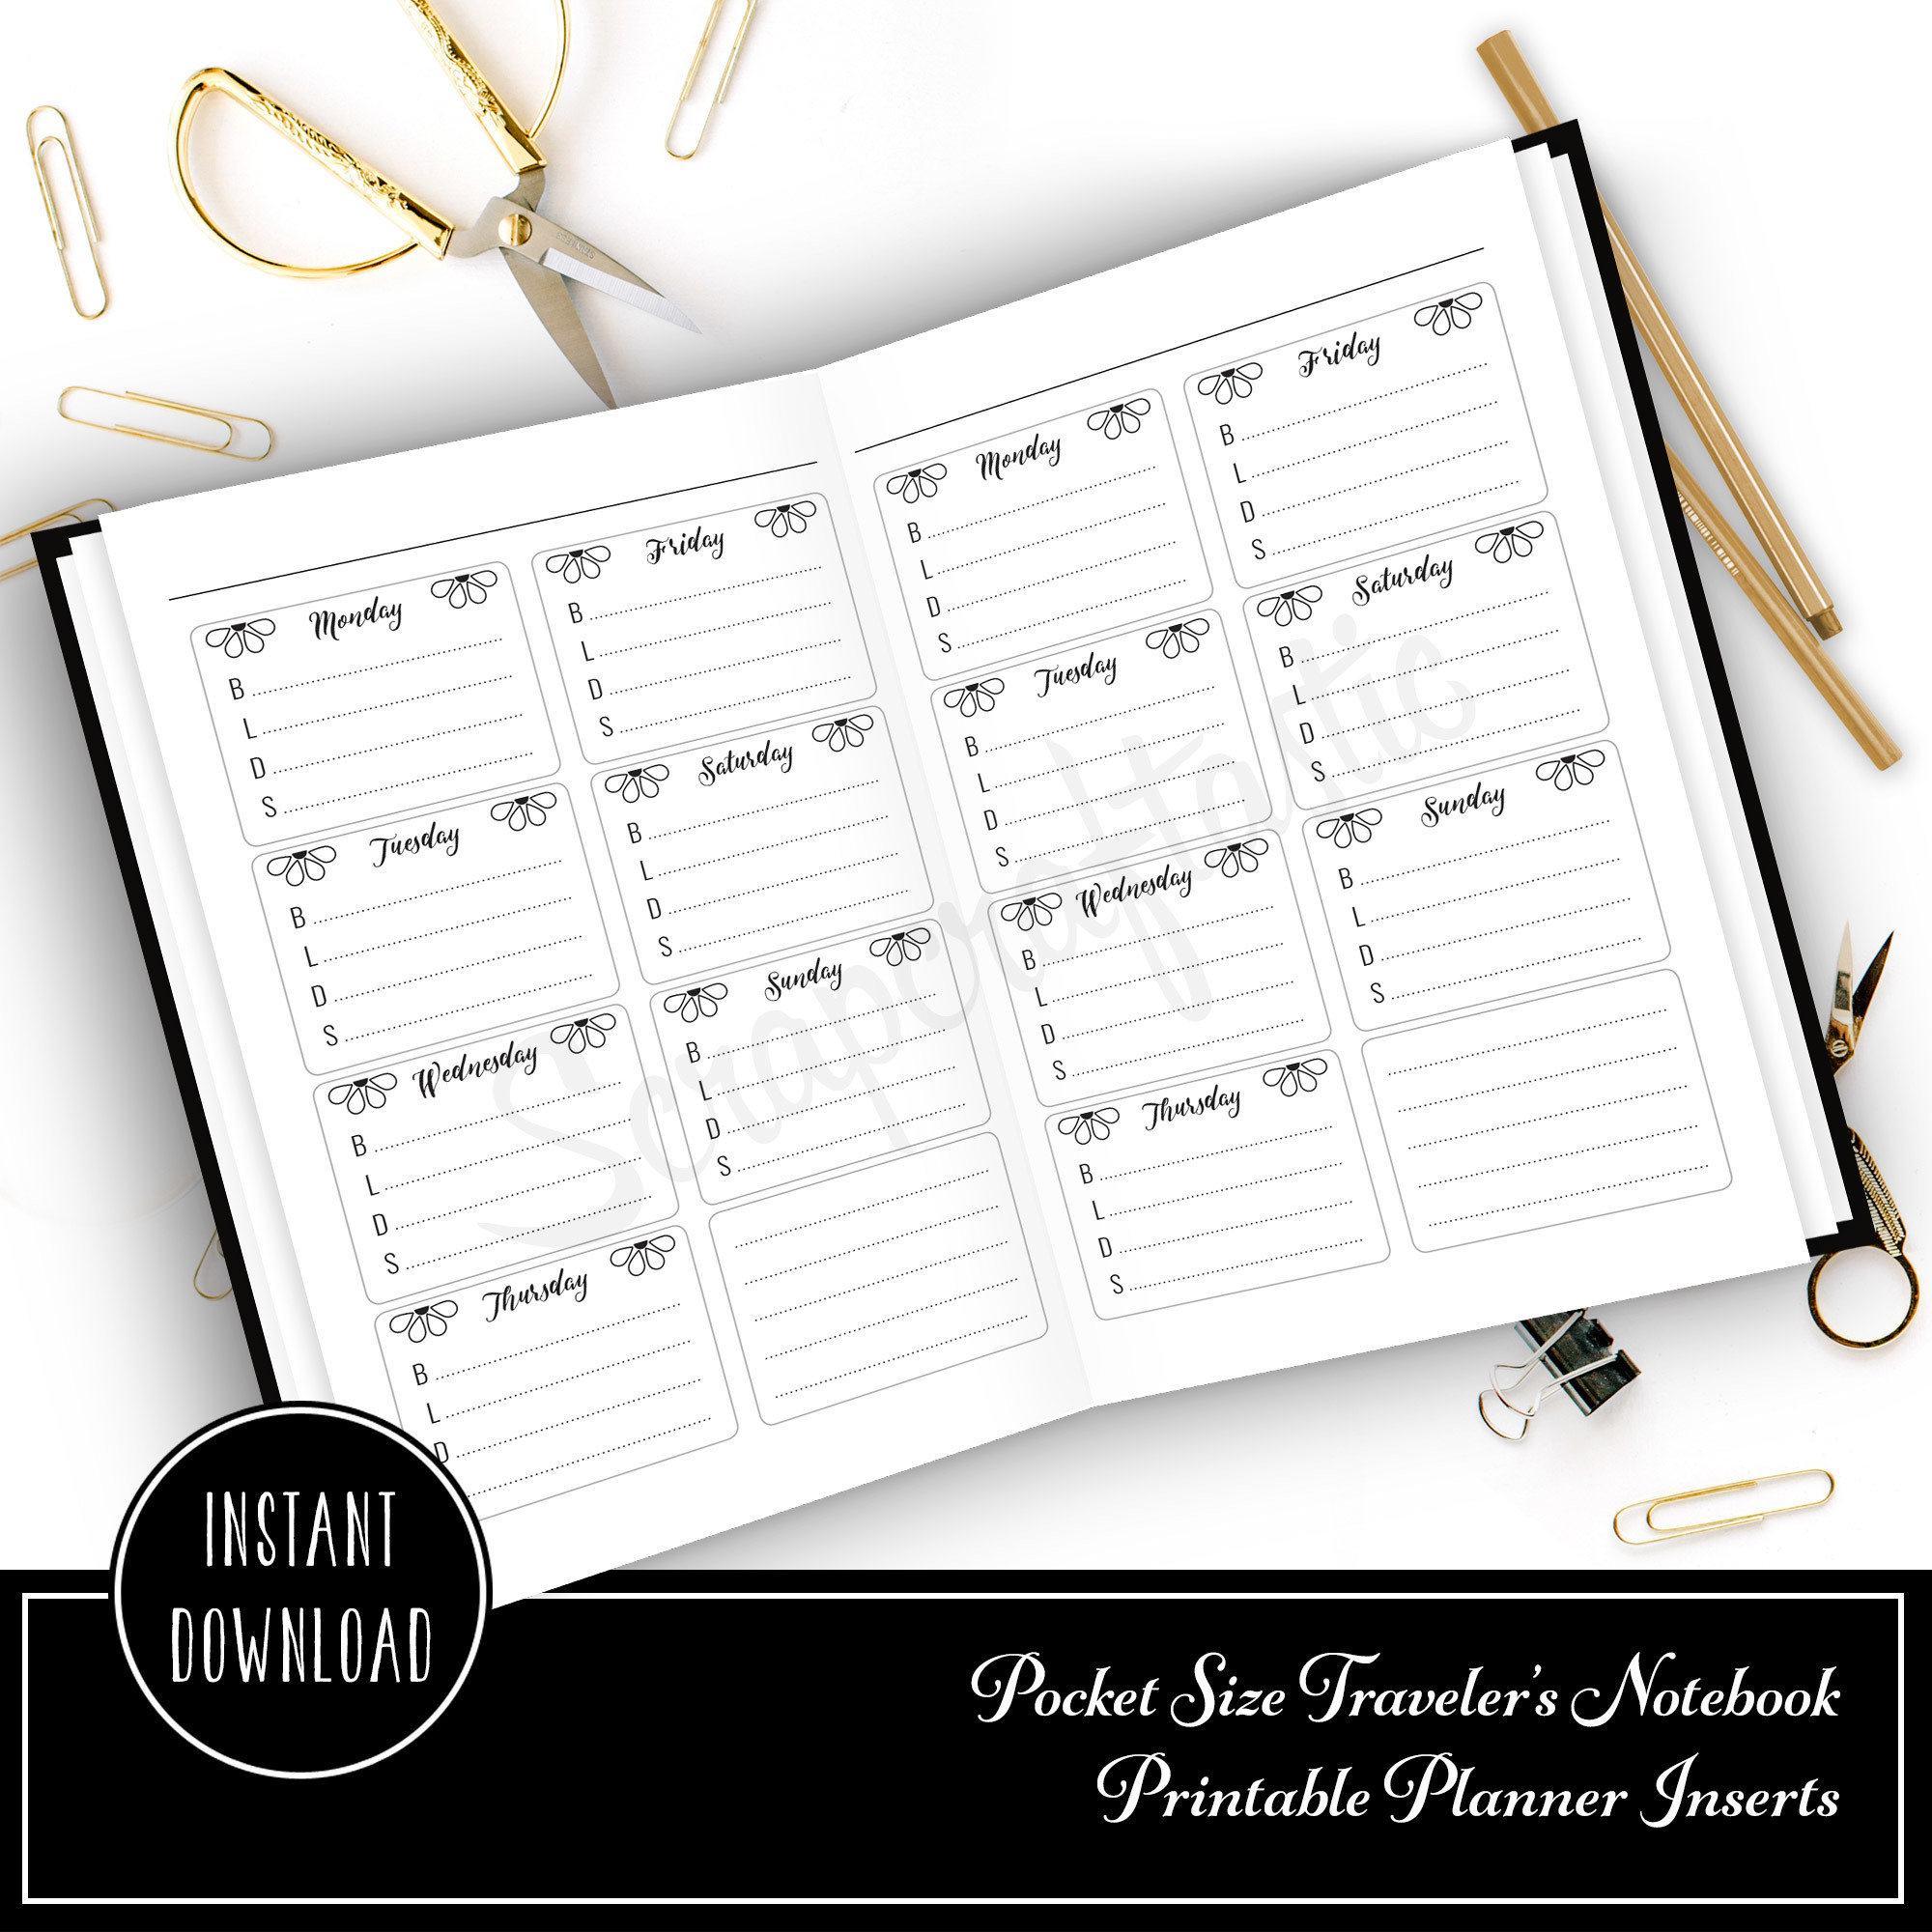 Weekly Meal Tracker Pocket Size Traveler's Notebook Fauxdori Printable Planner Inserts 10002